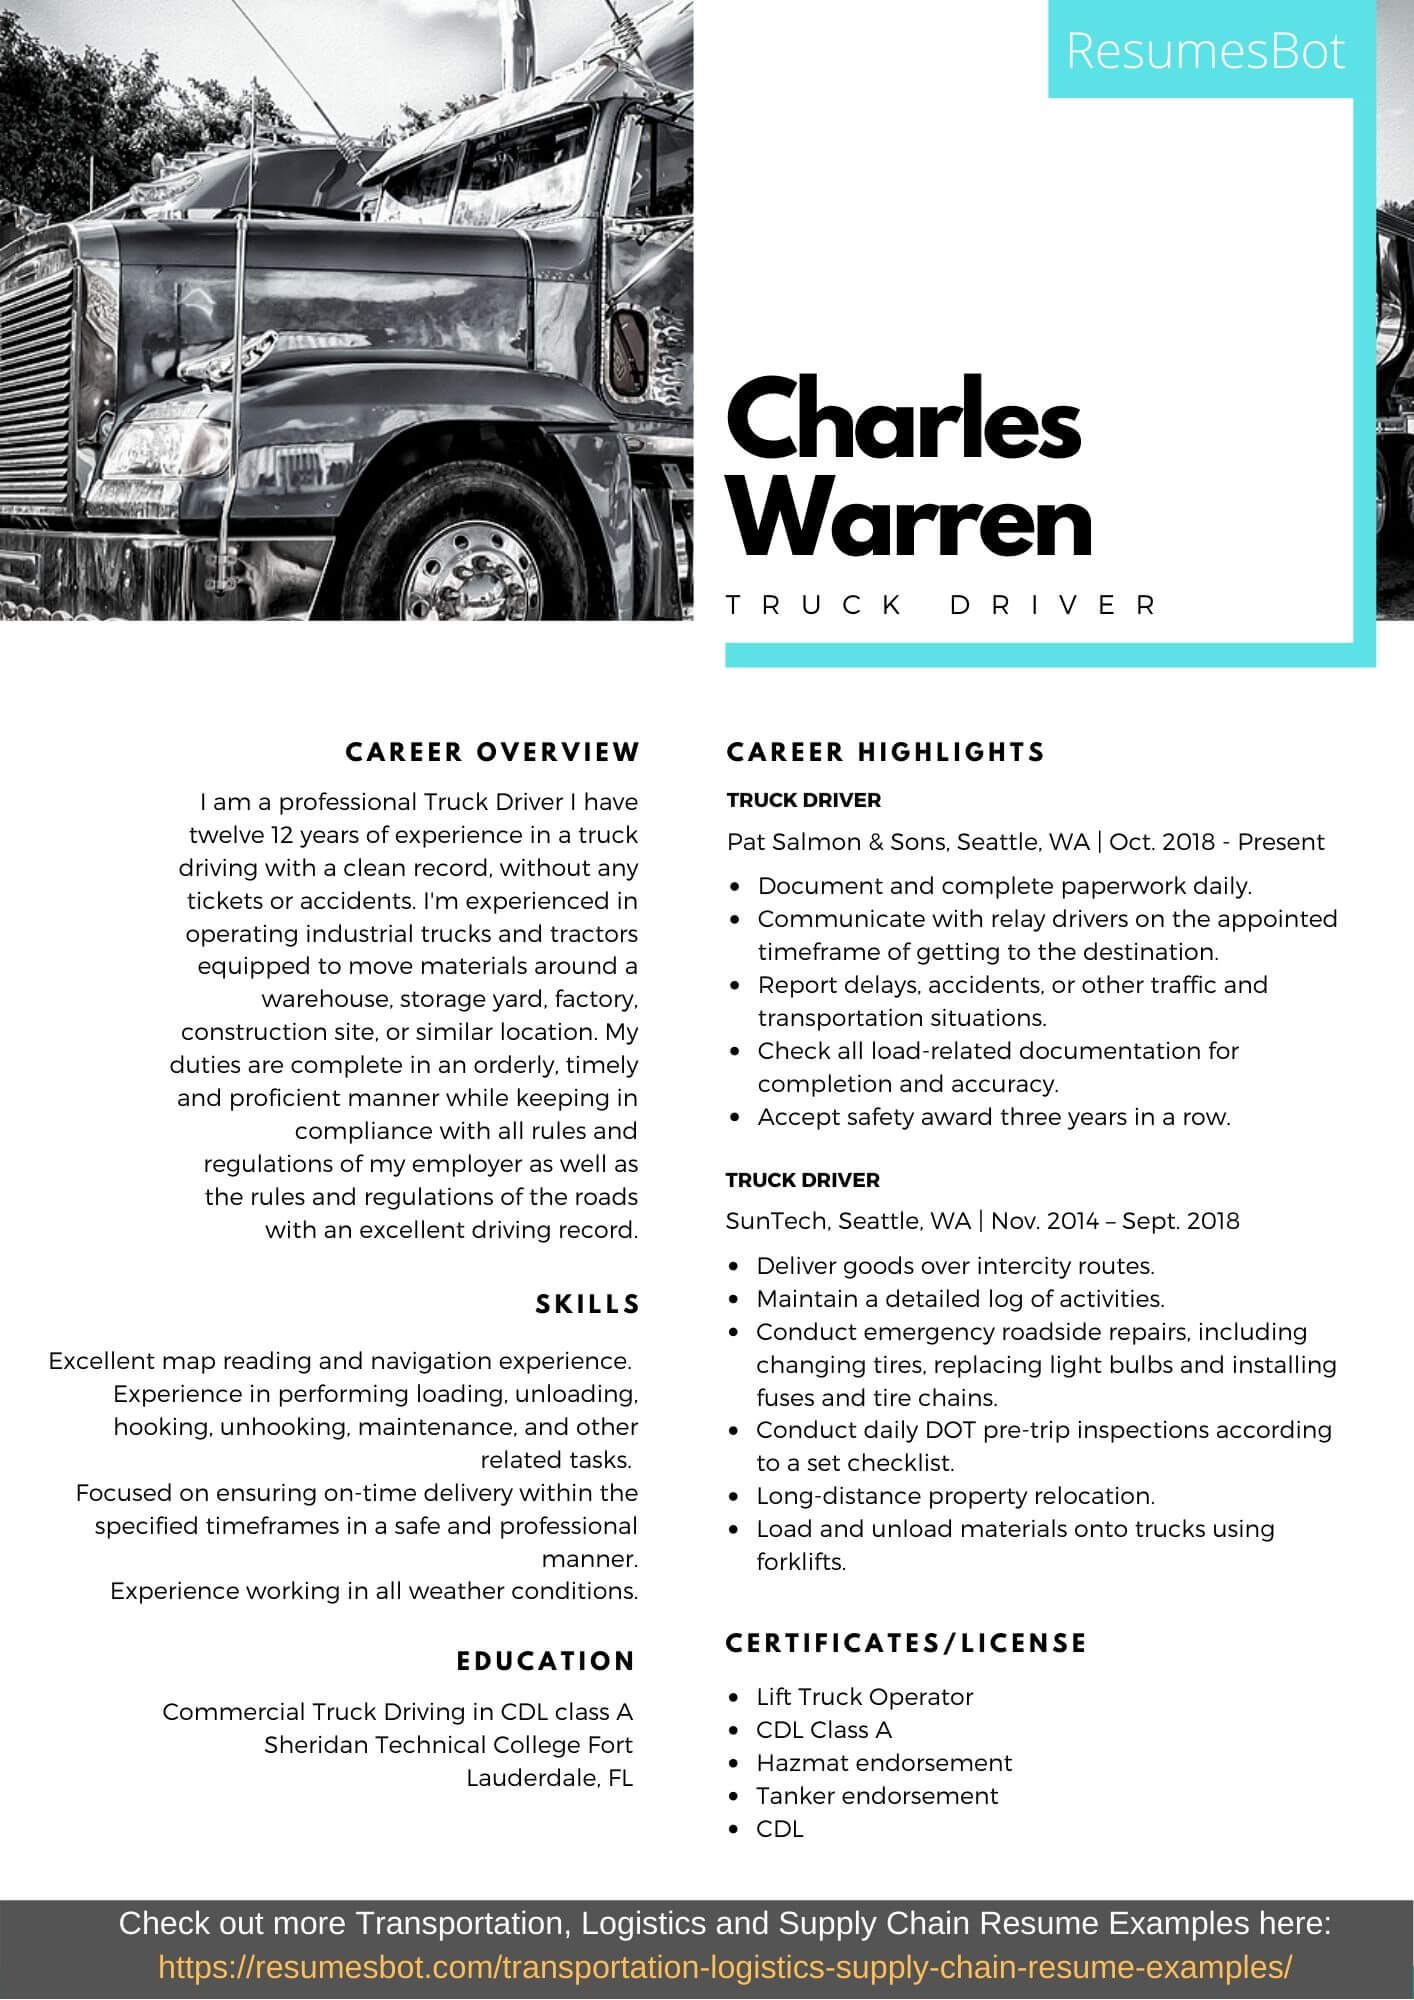 truck driver resume samples and tips pdf resumes bot driving objective examples example Resume Truck Driving Resume Objective Examples